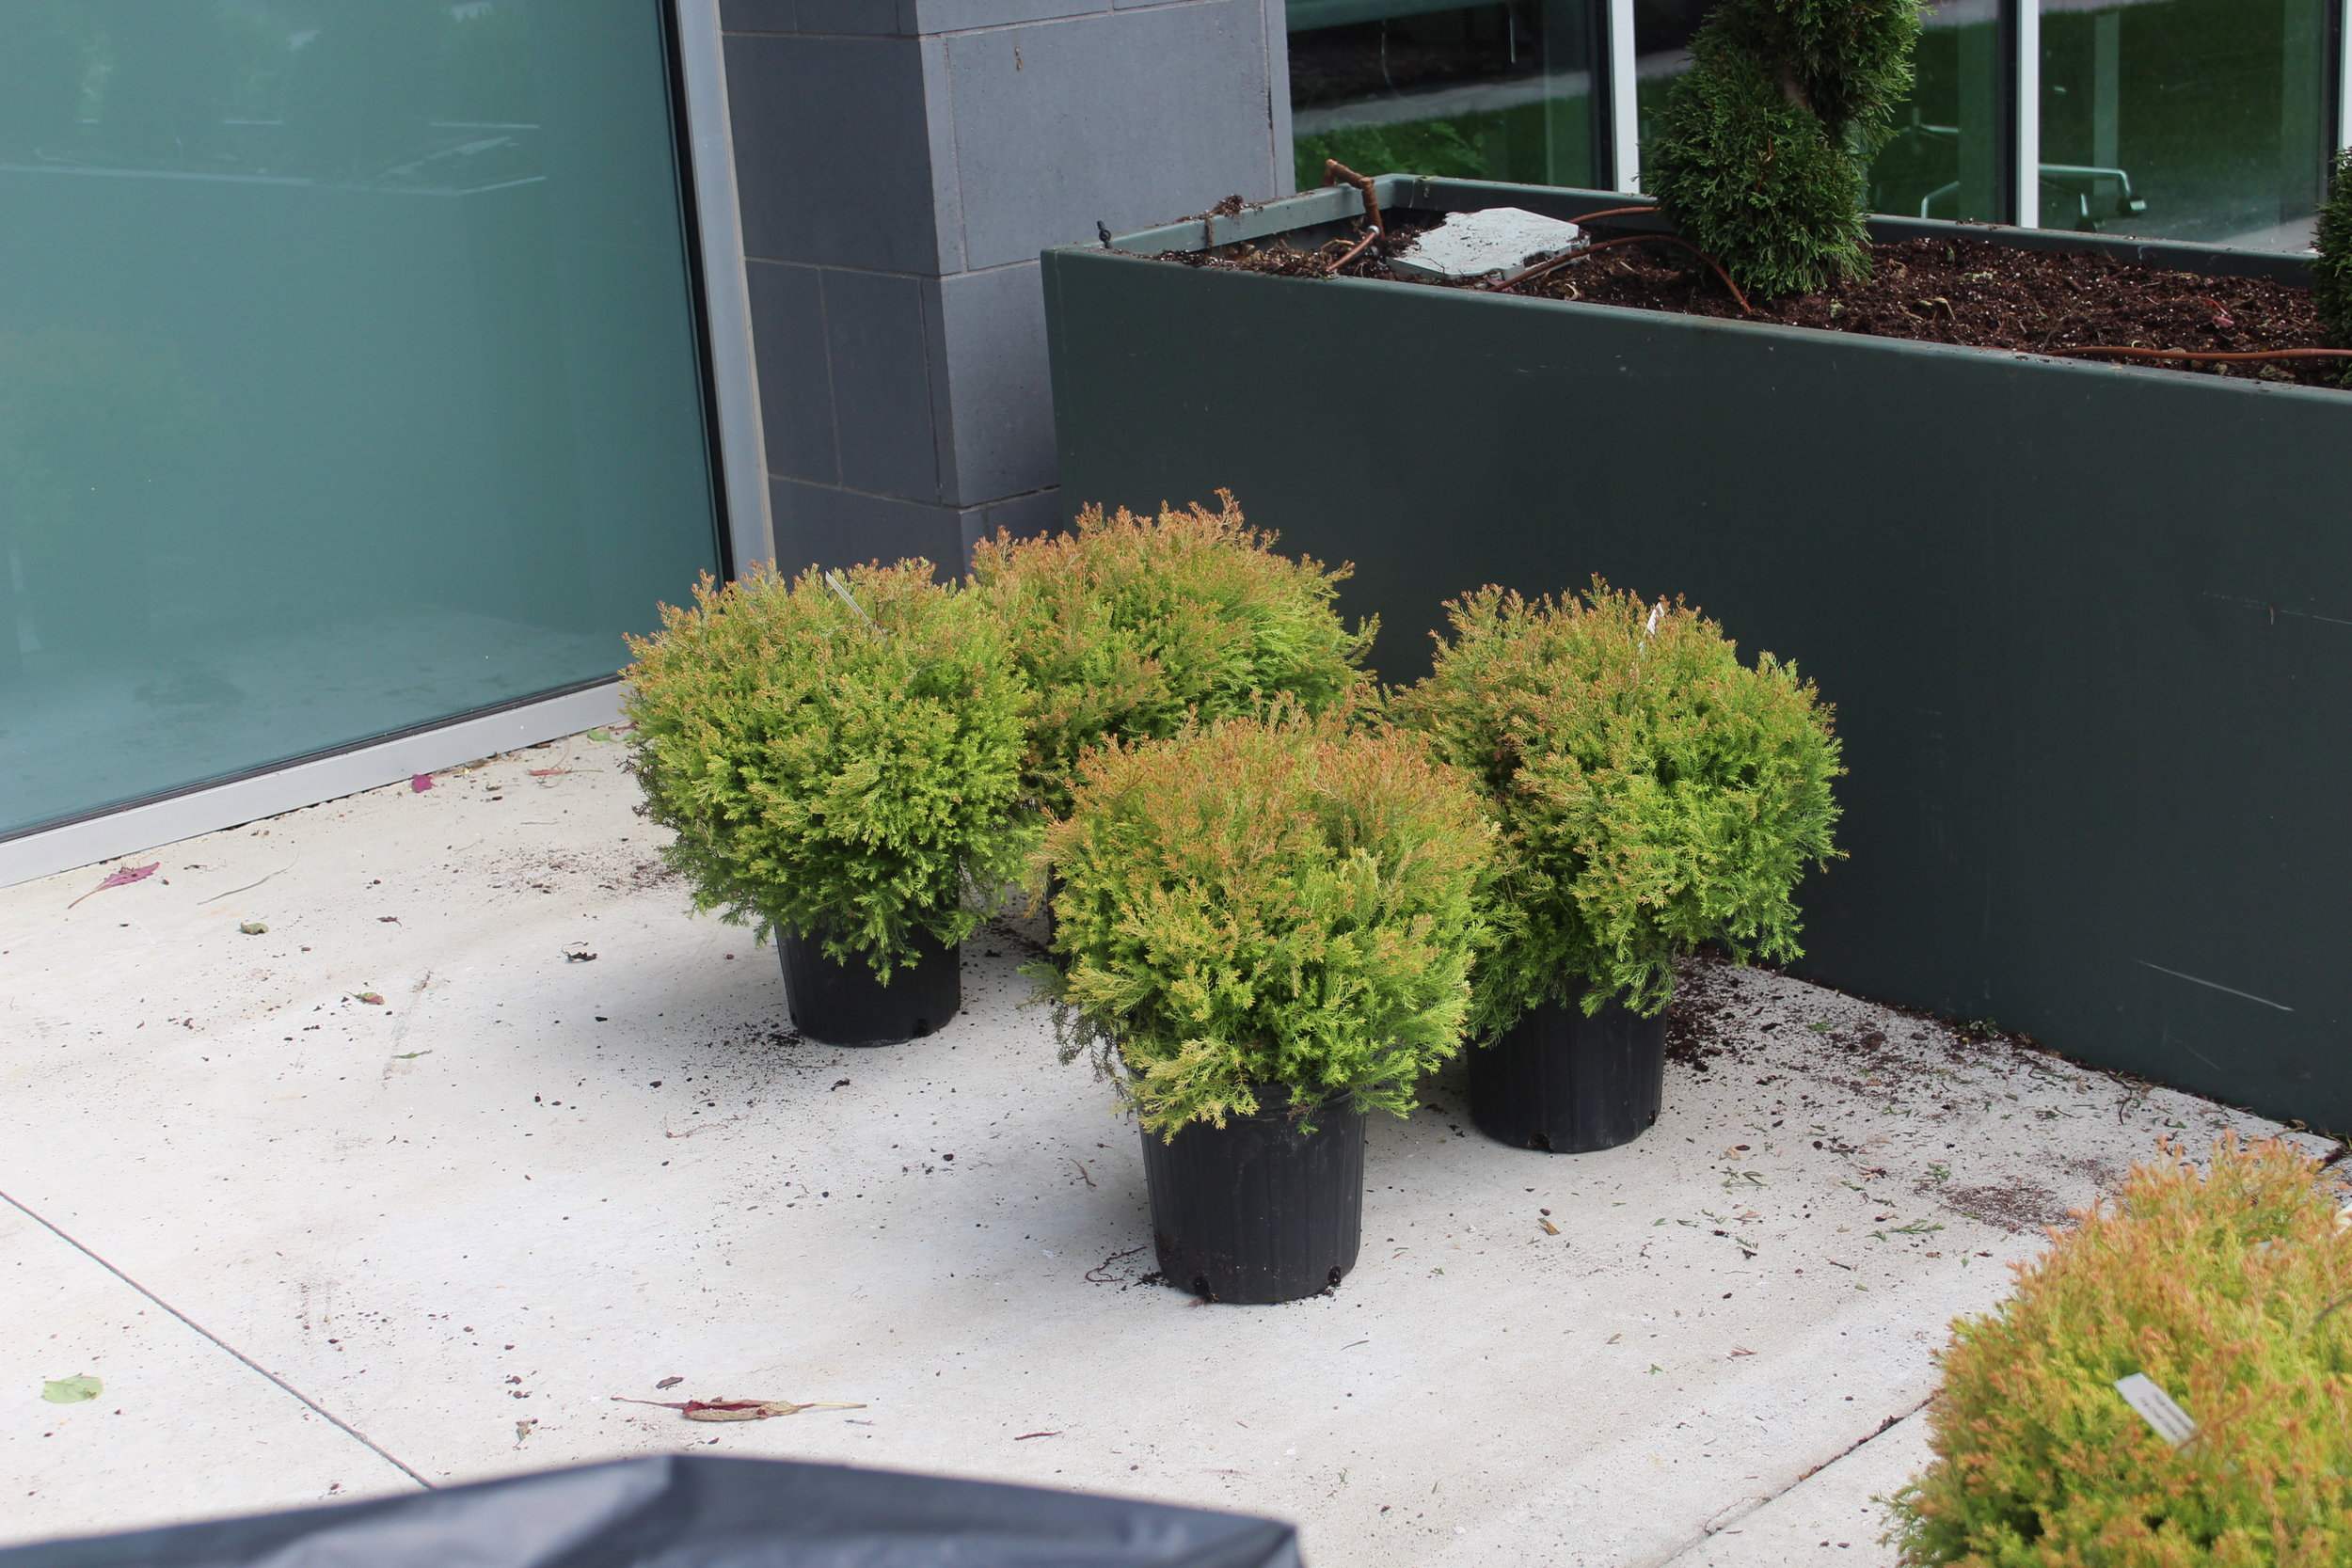 'Firechief' arborvitaes will be the filler at the base of the 'Emerald Green' arborvitaes. These 'Firechiefs' are in 2 gallon containers, so they aren't too large for the container, and their blush pink color gets deeper as winter comes on.